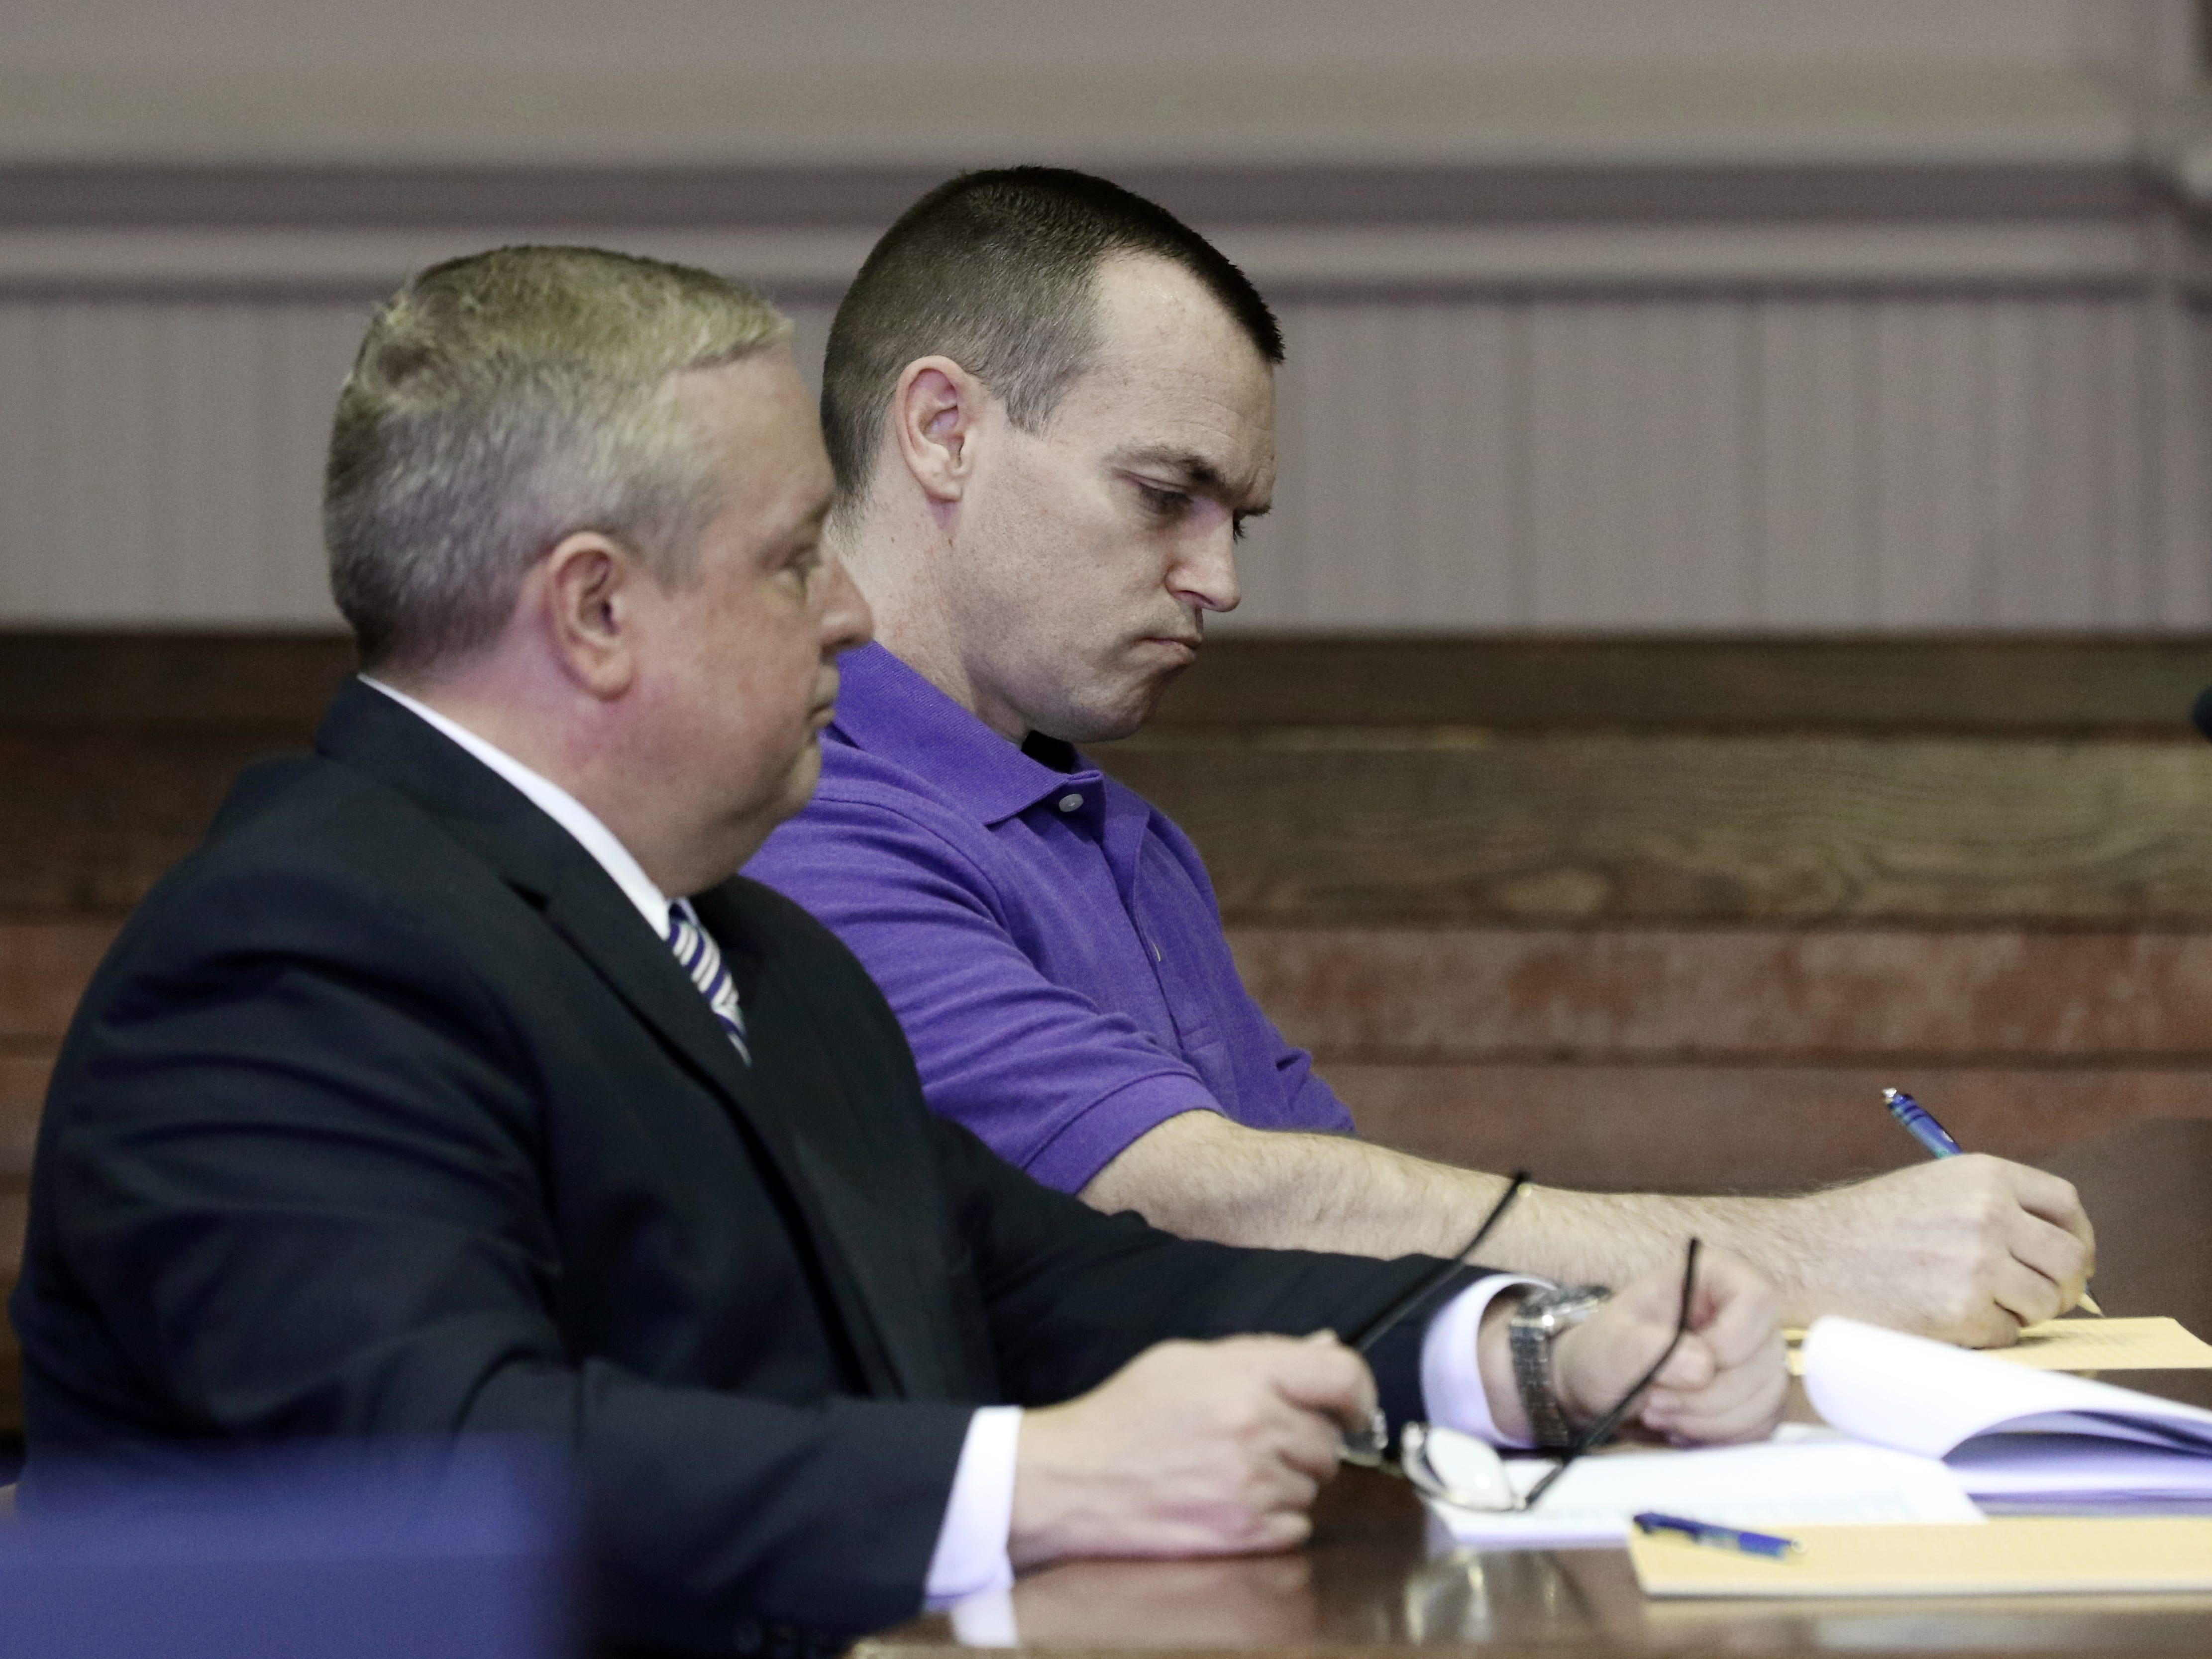 John Iden. takes notes during Muskingum County Assistant Prosecutor Ron Welch's opening statement in the Iden's trial.